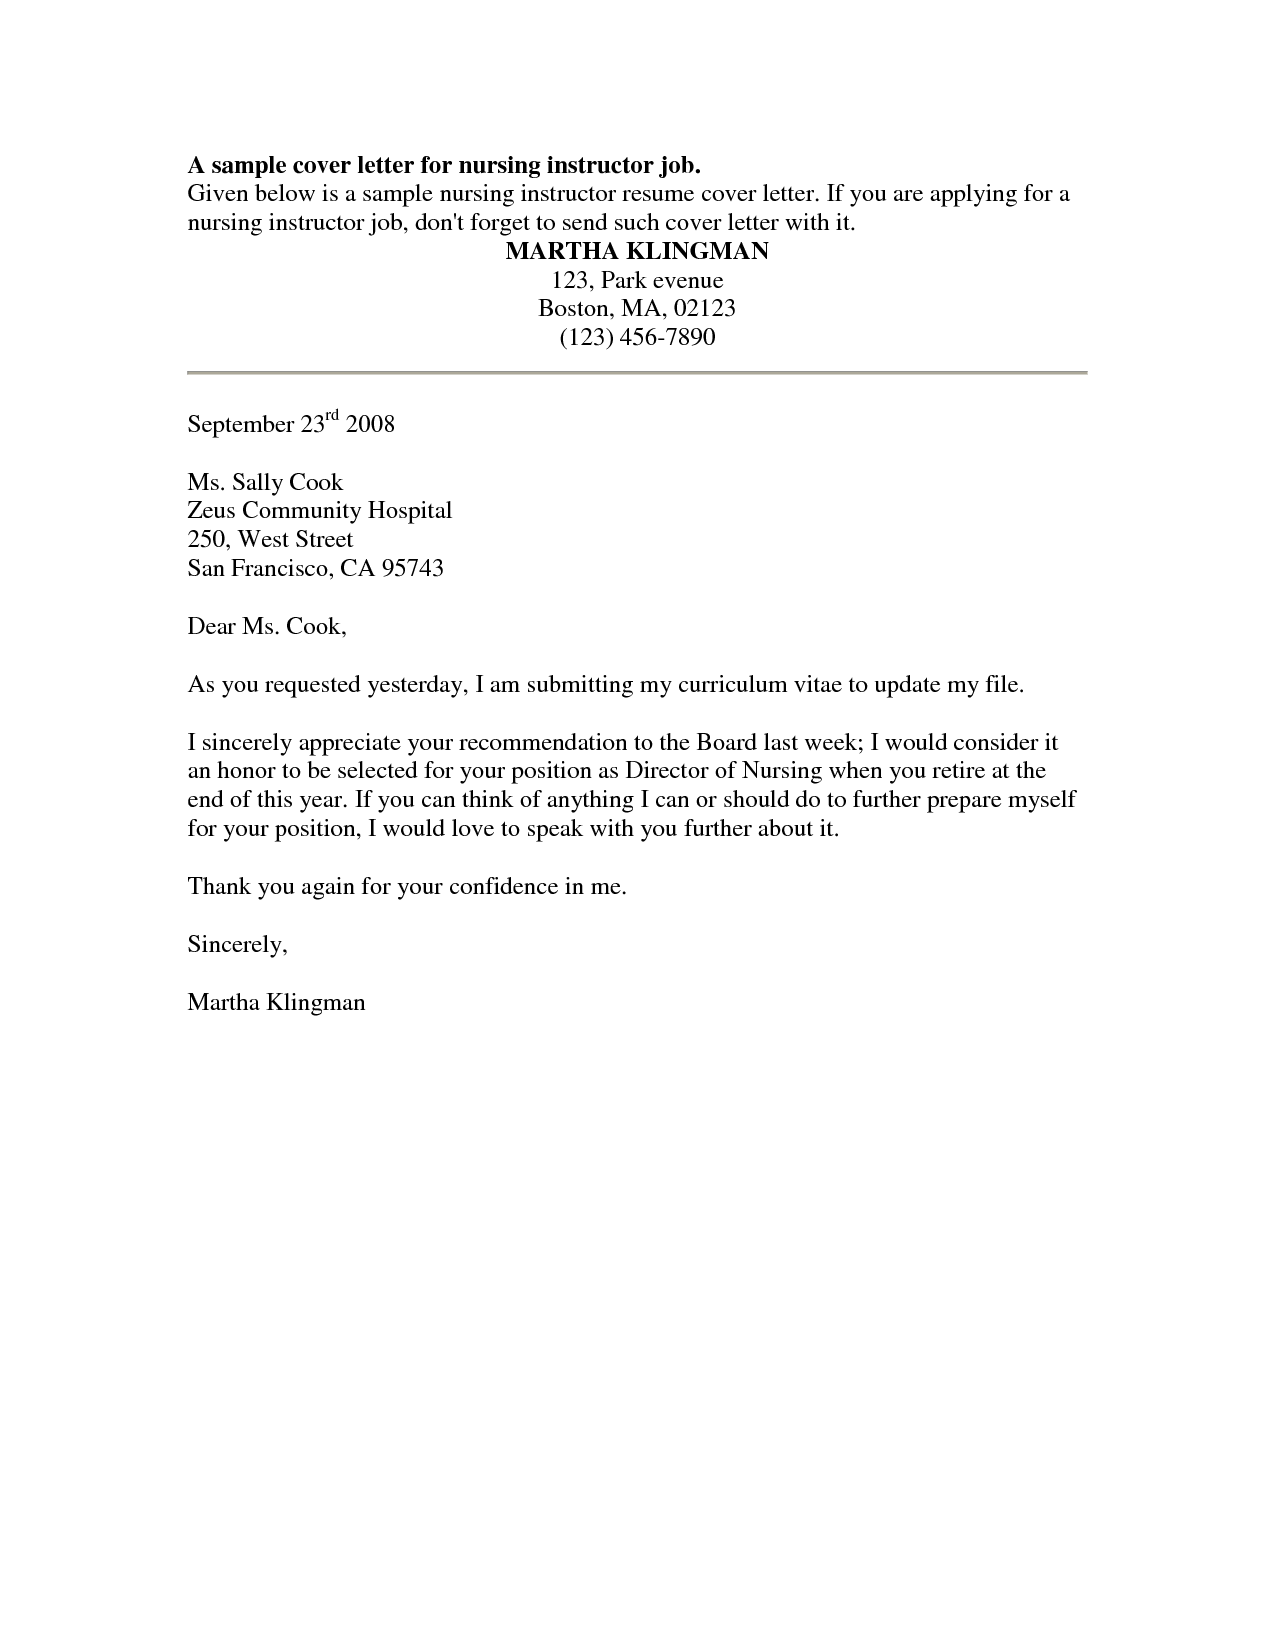 Best College Cover Letter Template    For Images Of Cover Letters with  College Cover Letter Template